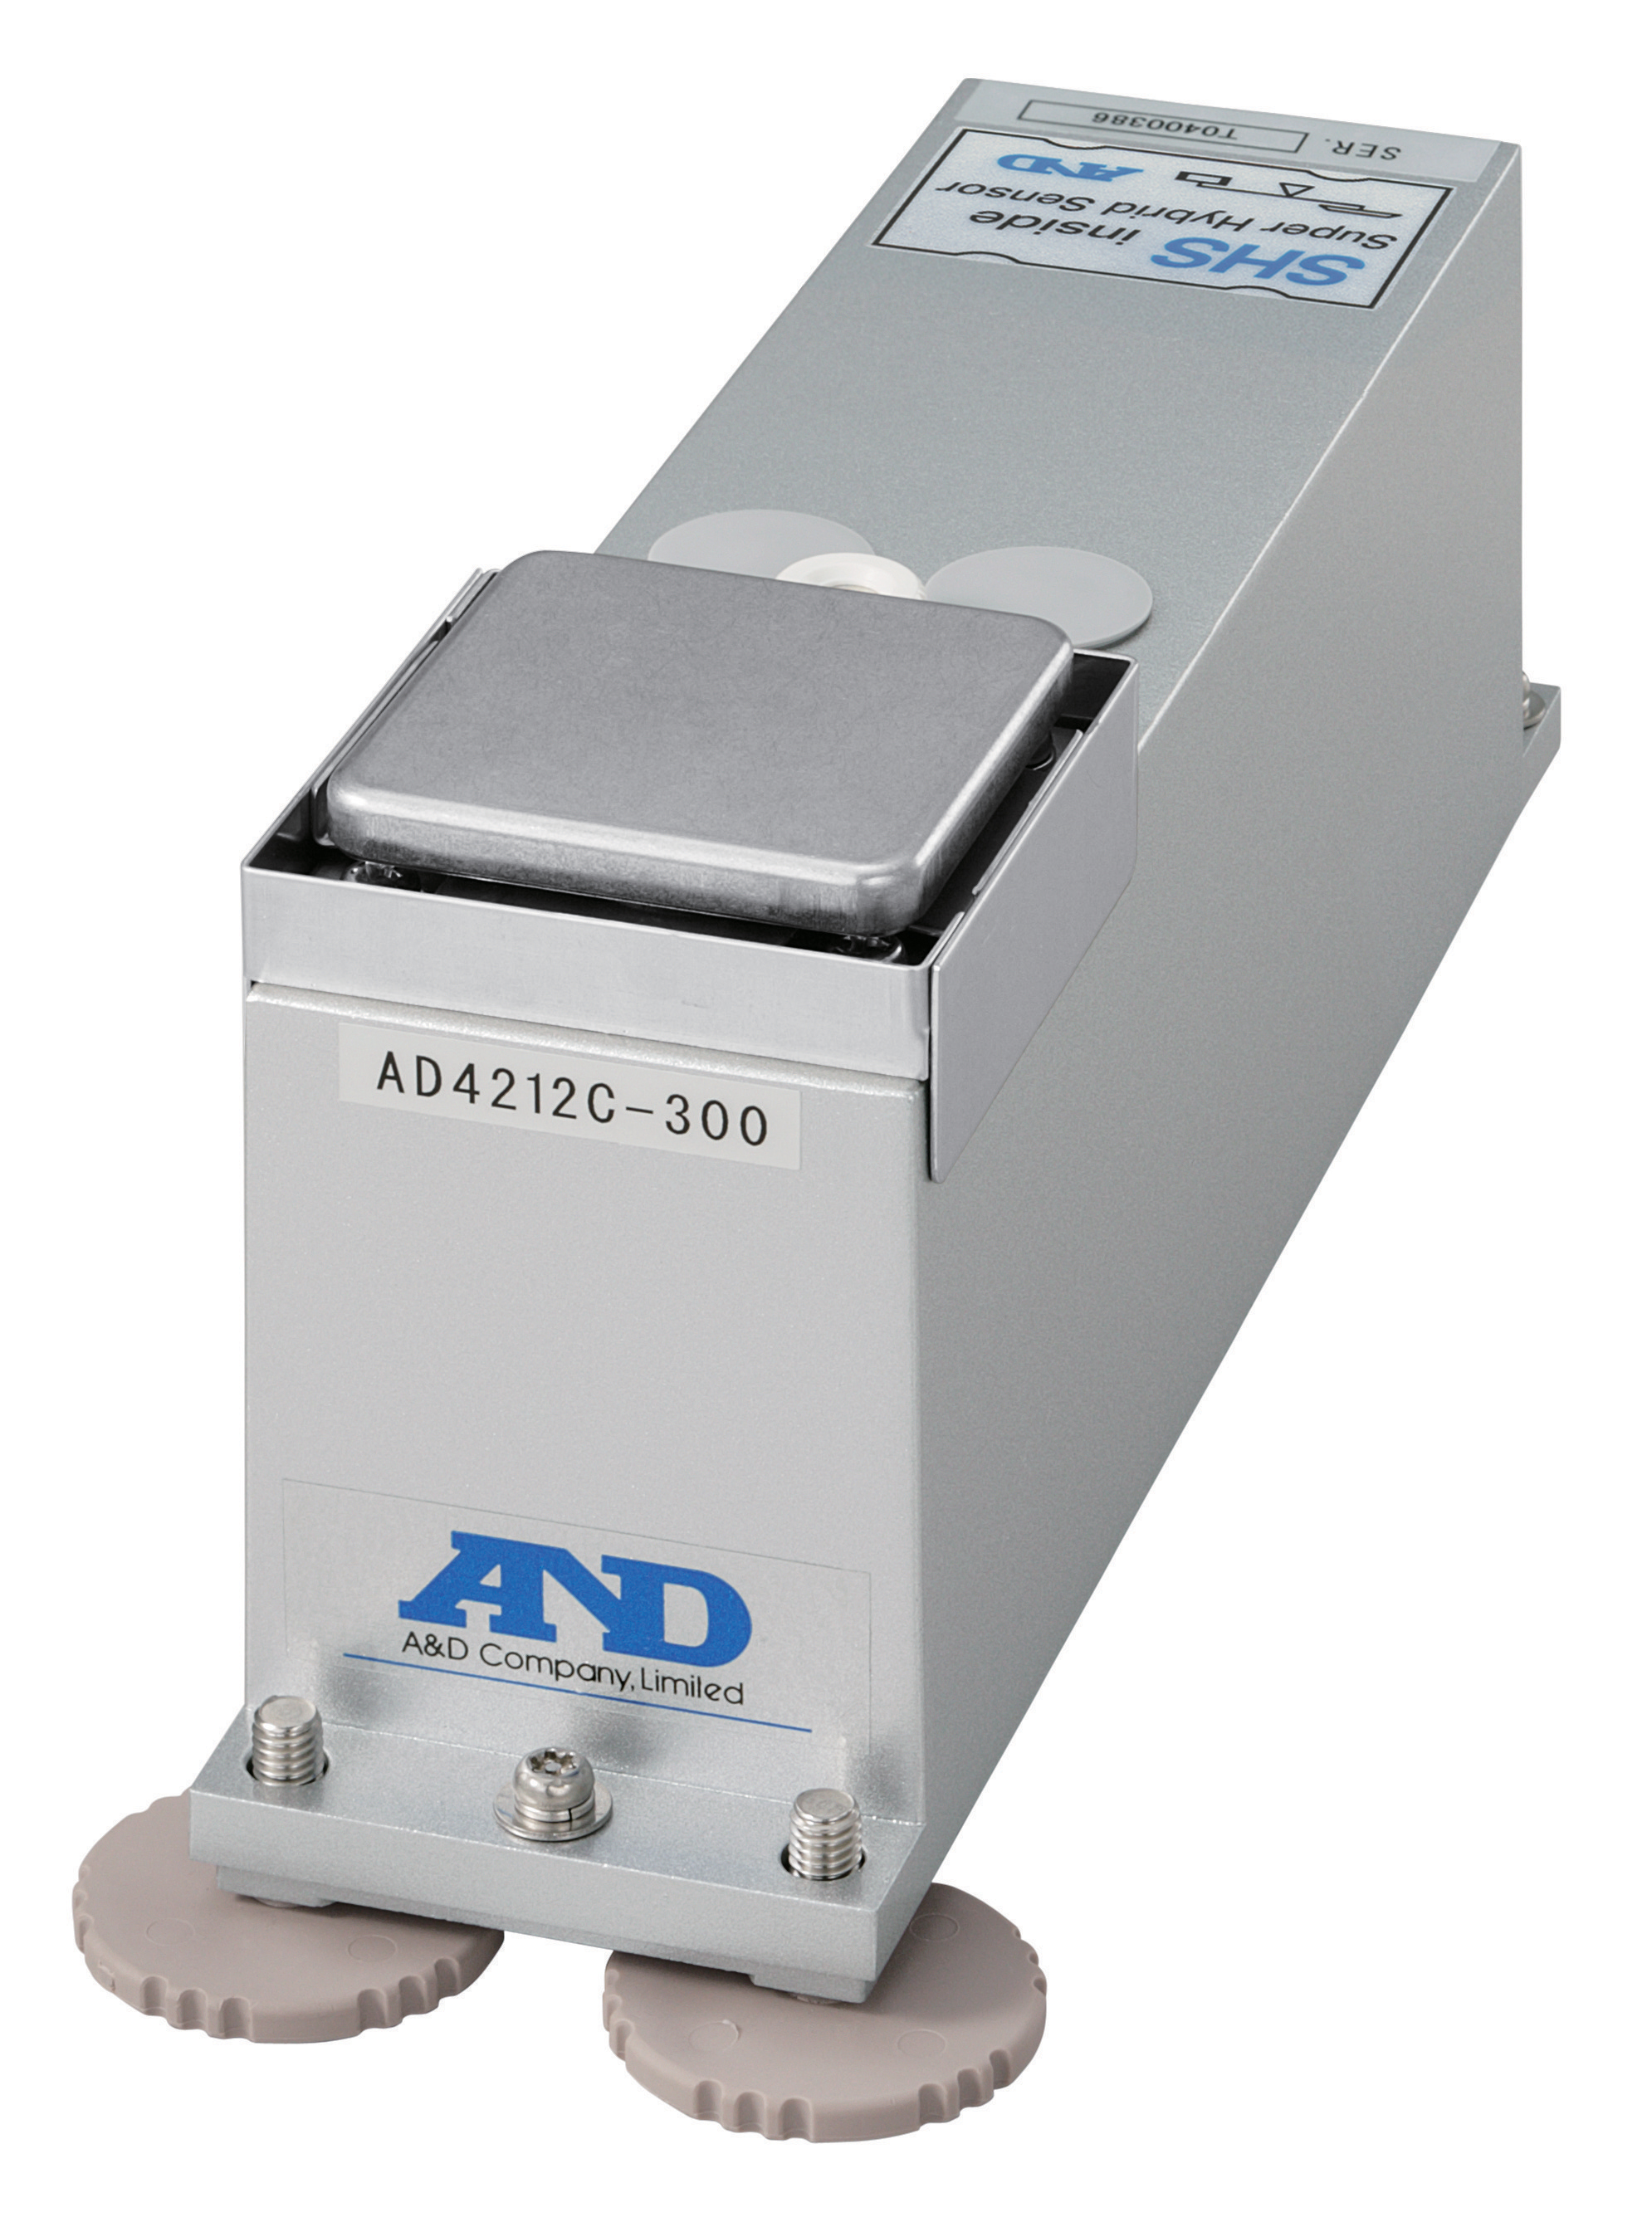 A&D AD-4212C HIGH SPEED PRODUCTION WEIGHING SENSOR